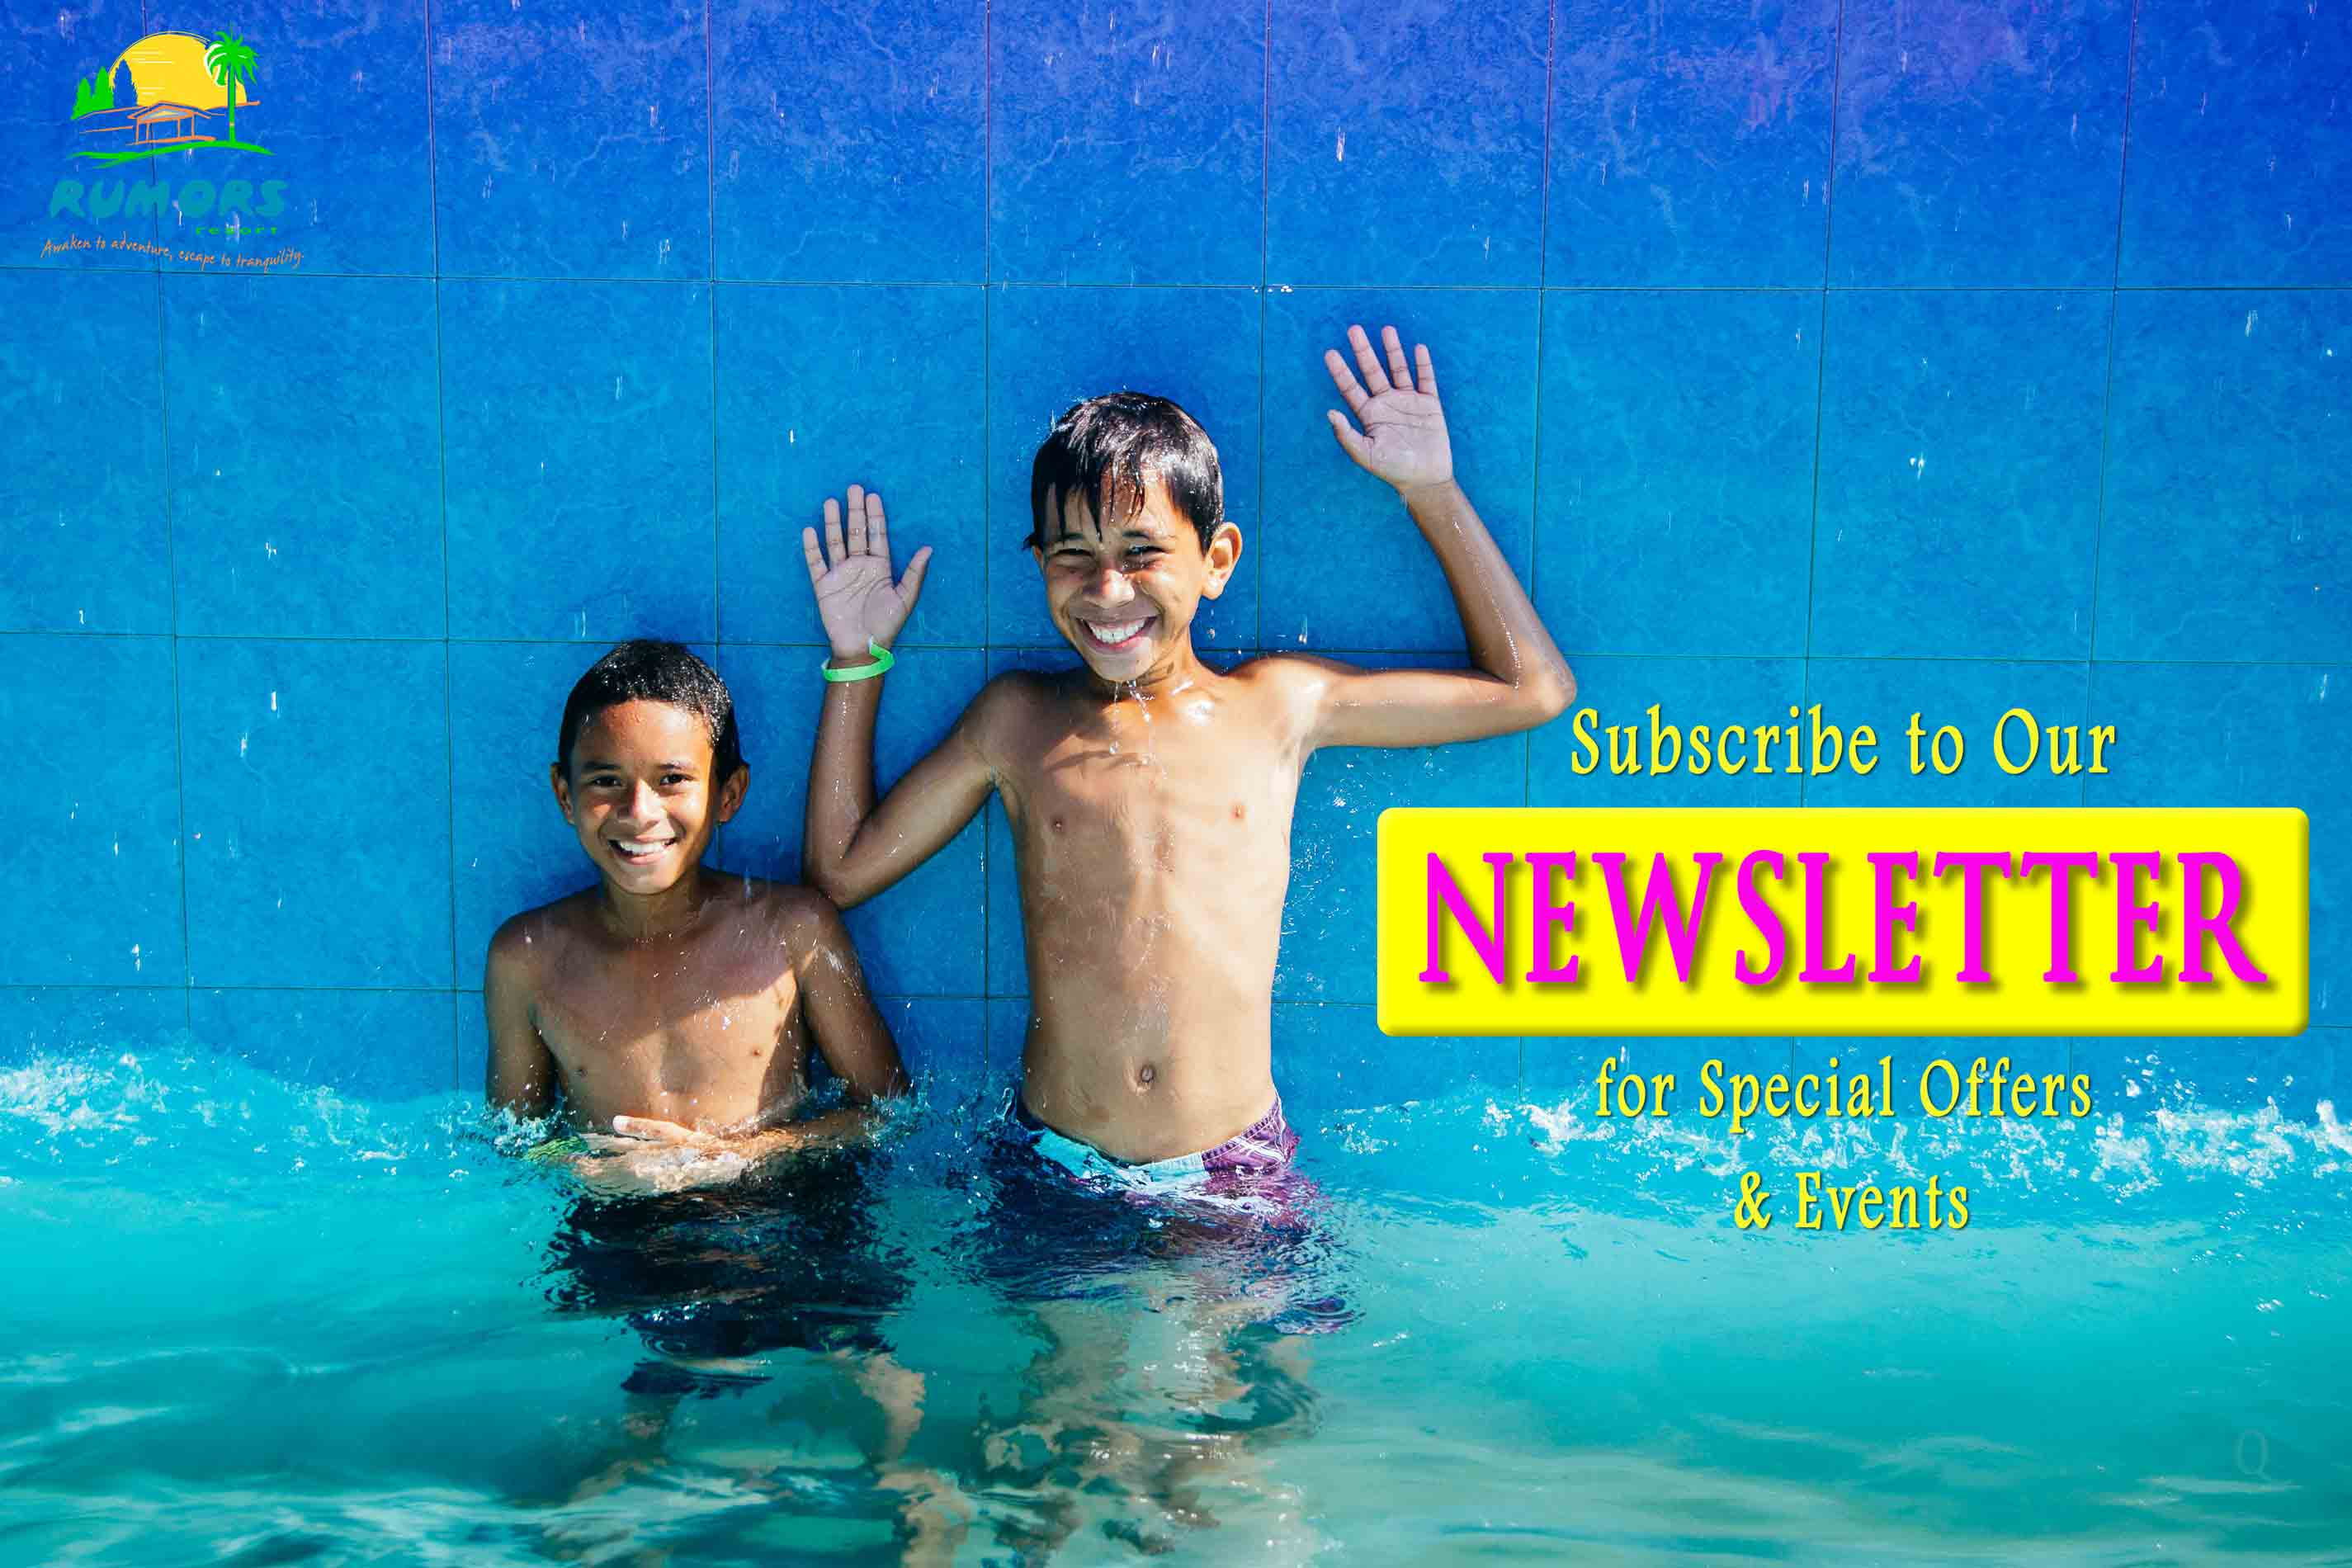 Join Our Newsletter Family For Exclusive Deals